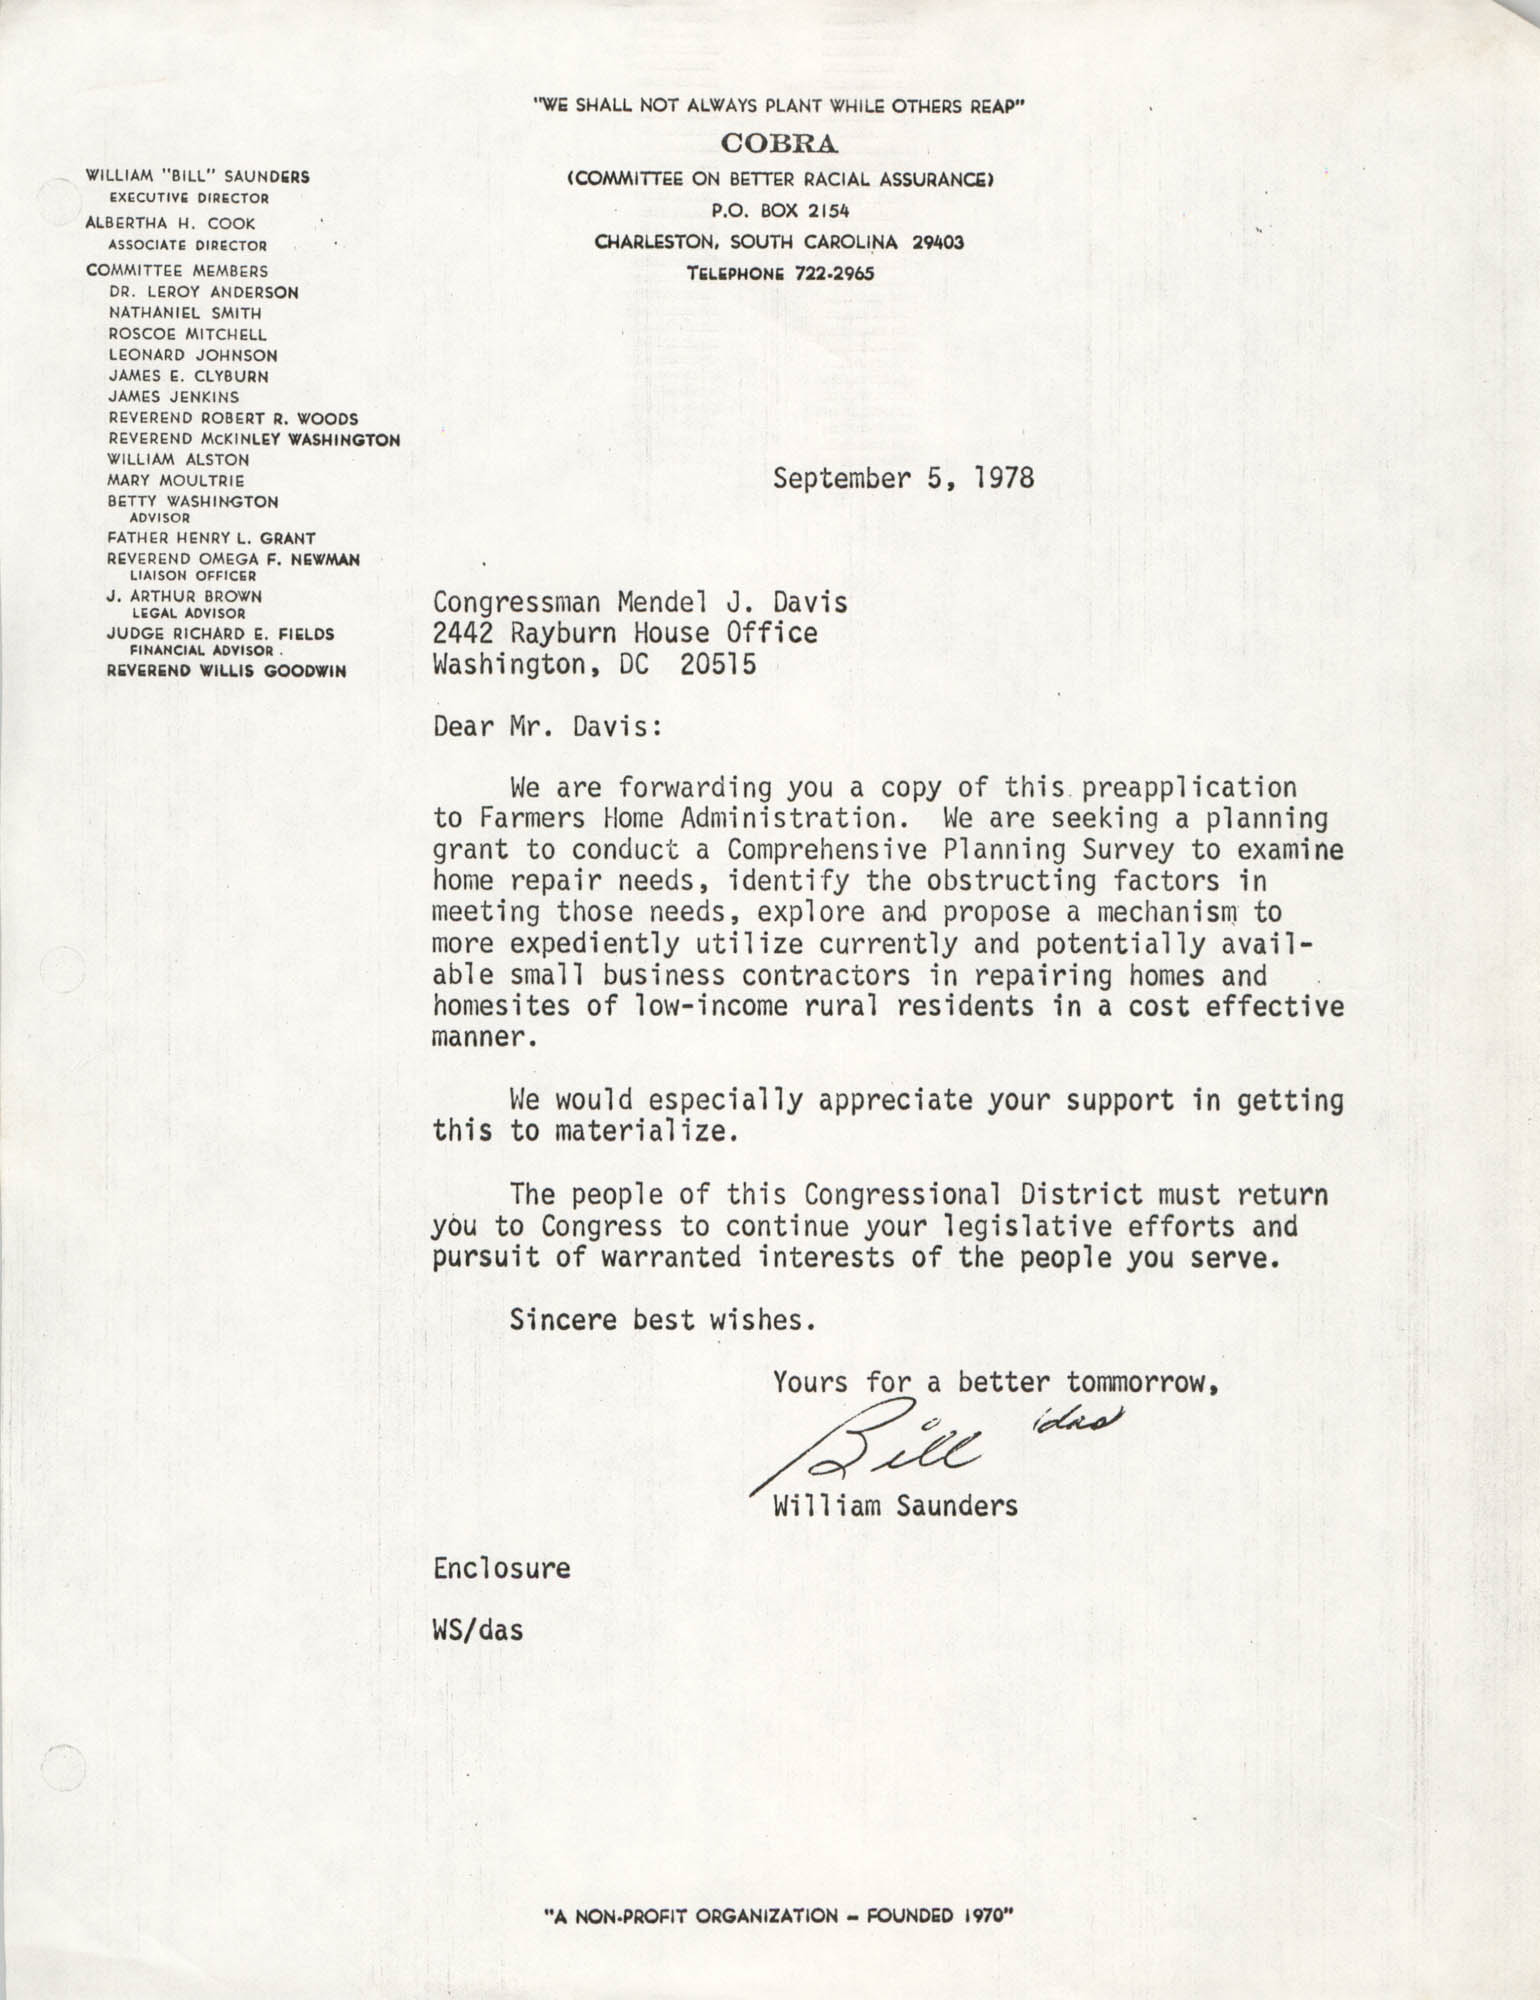 Letter from William Saunders to Mendel J. Davis, September 5, 1978